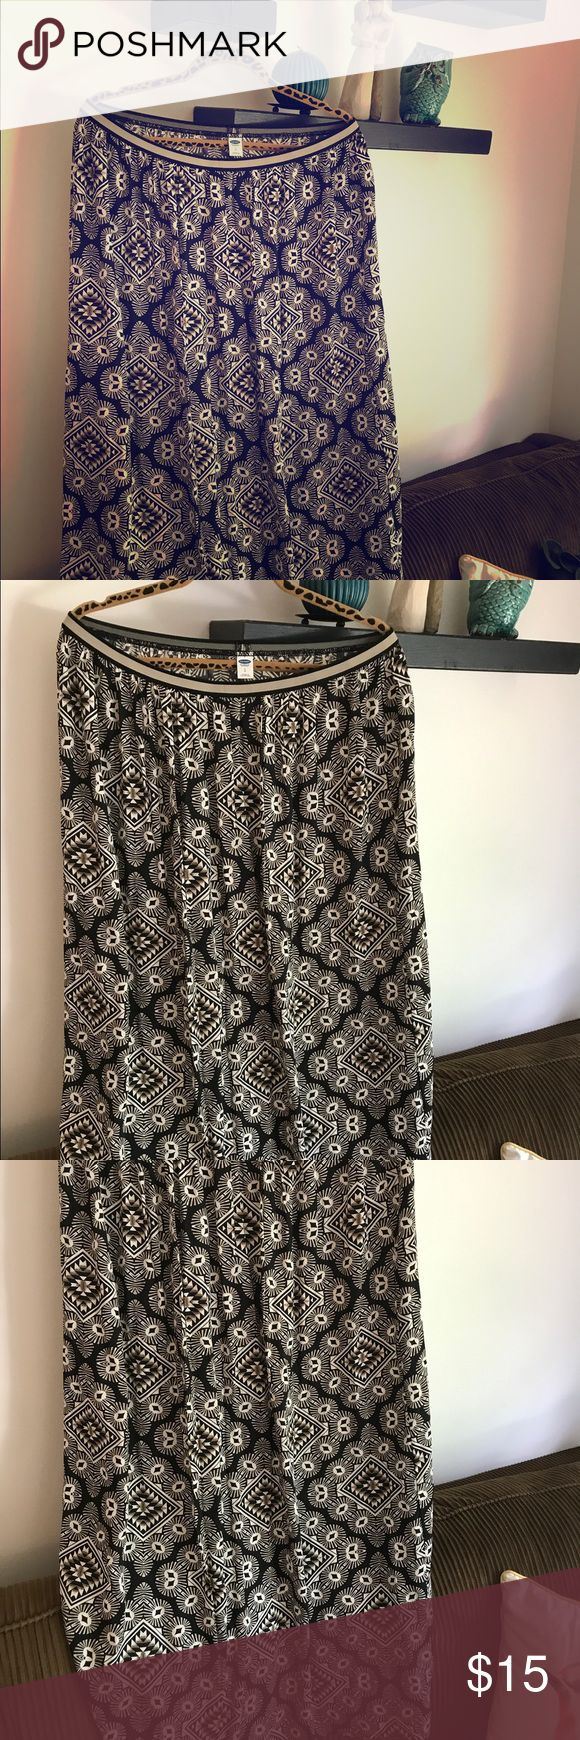 Old Navy maxi skirt - adorable Aztec style design! Old Navy maxi skirt - adorable Aztec style design - neutral colors! Must have for summer and fall! ☀️🍁 Old Navy Skirts Maxi